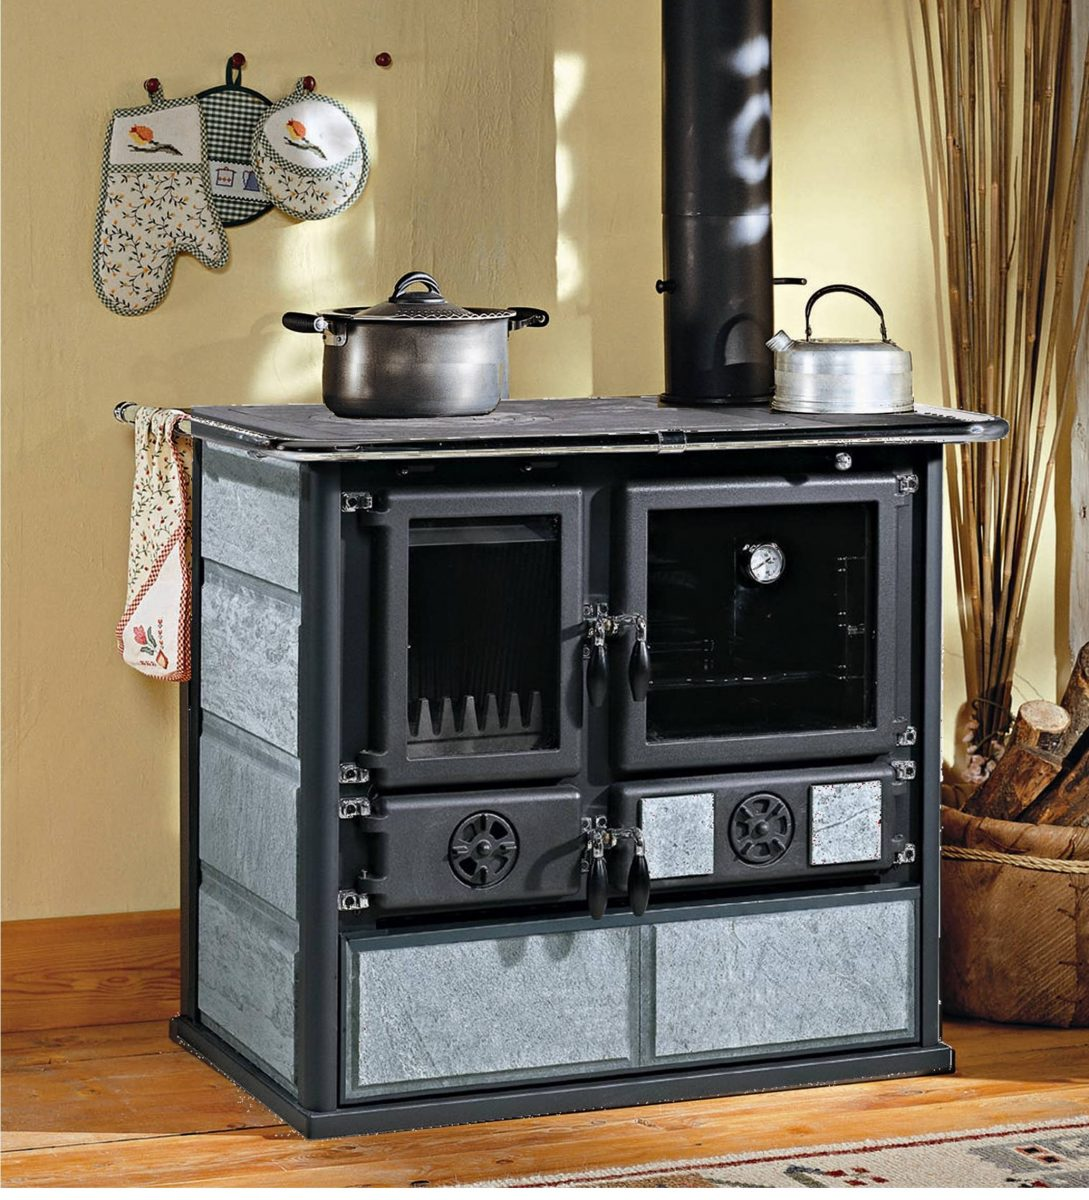 4ludlowrosa-wood-burning-cooker-in-soapstone-1200x1200.jpg